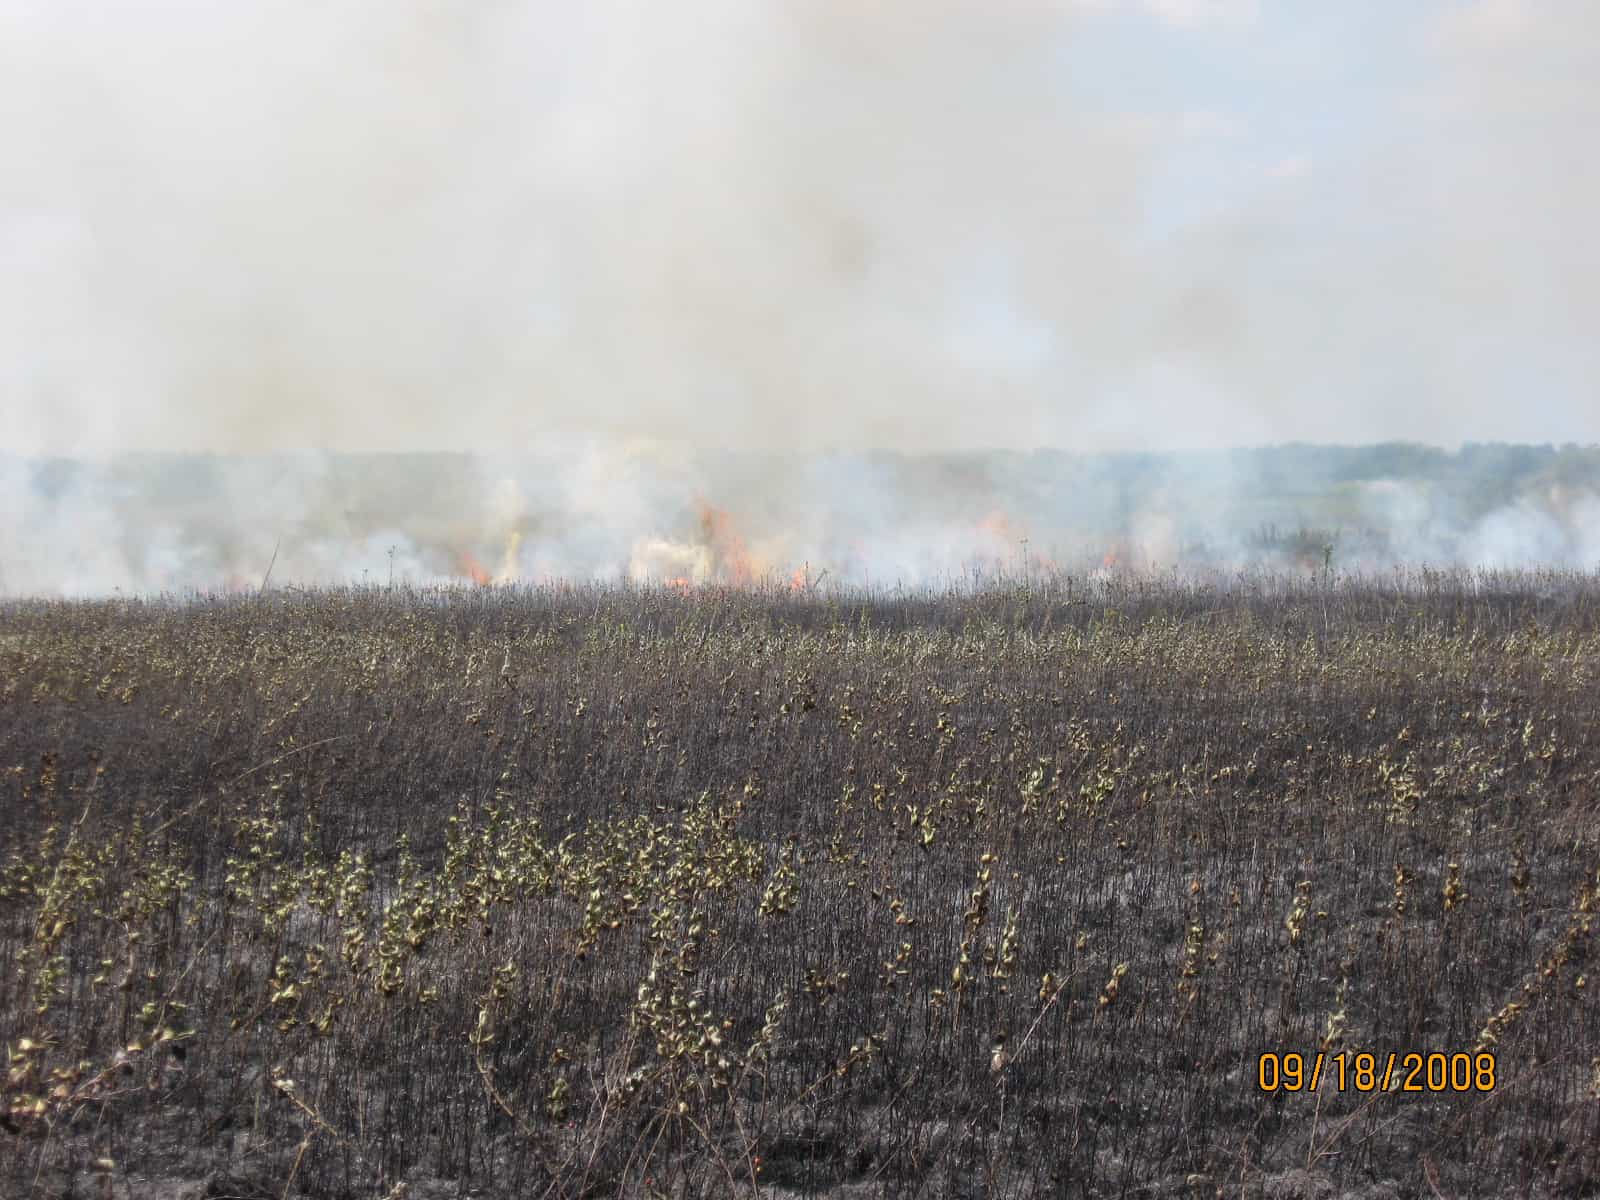 Late Summer/Early Fall Prescribed Burning